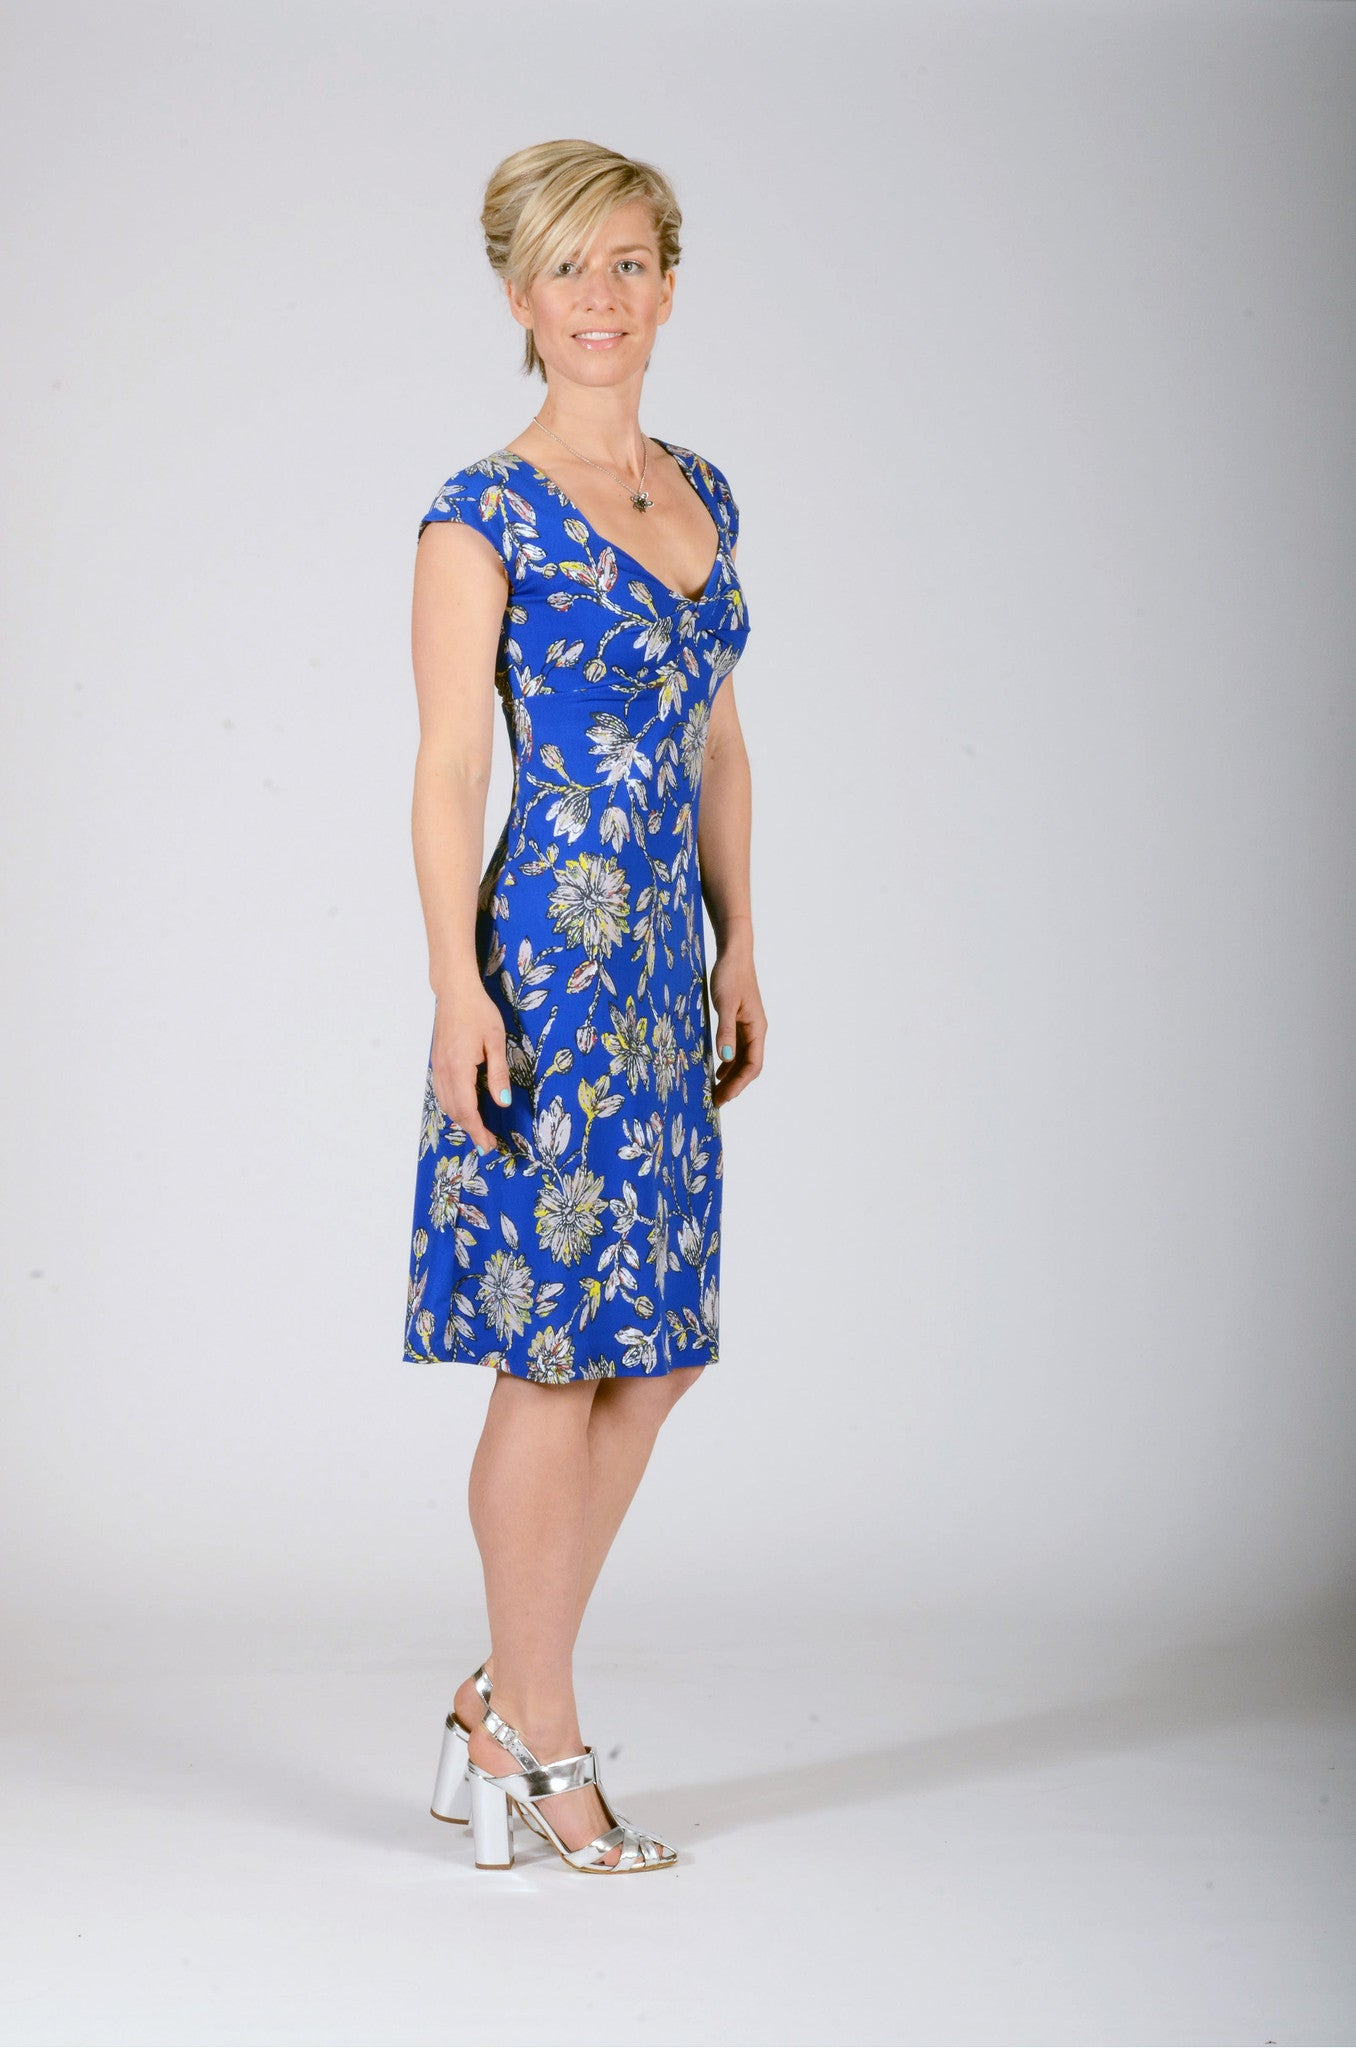 Vesta Twist Dress - Girl Friday was $198 now $138